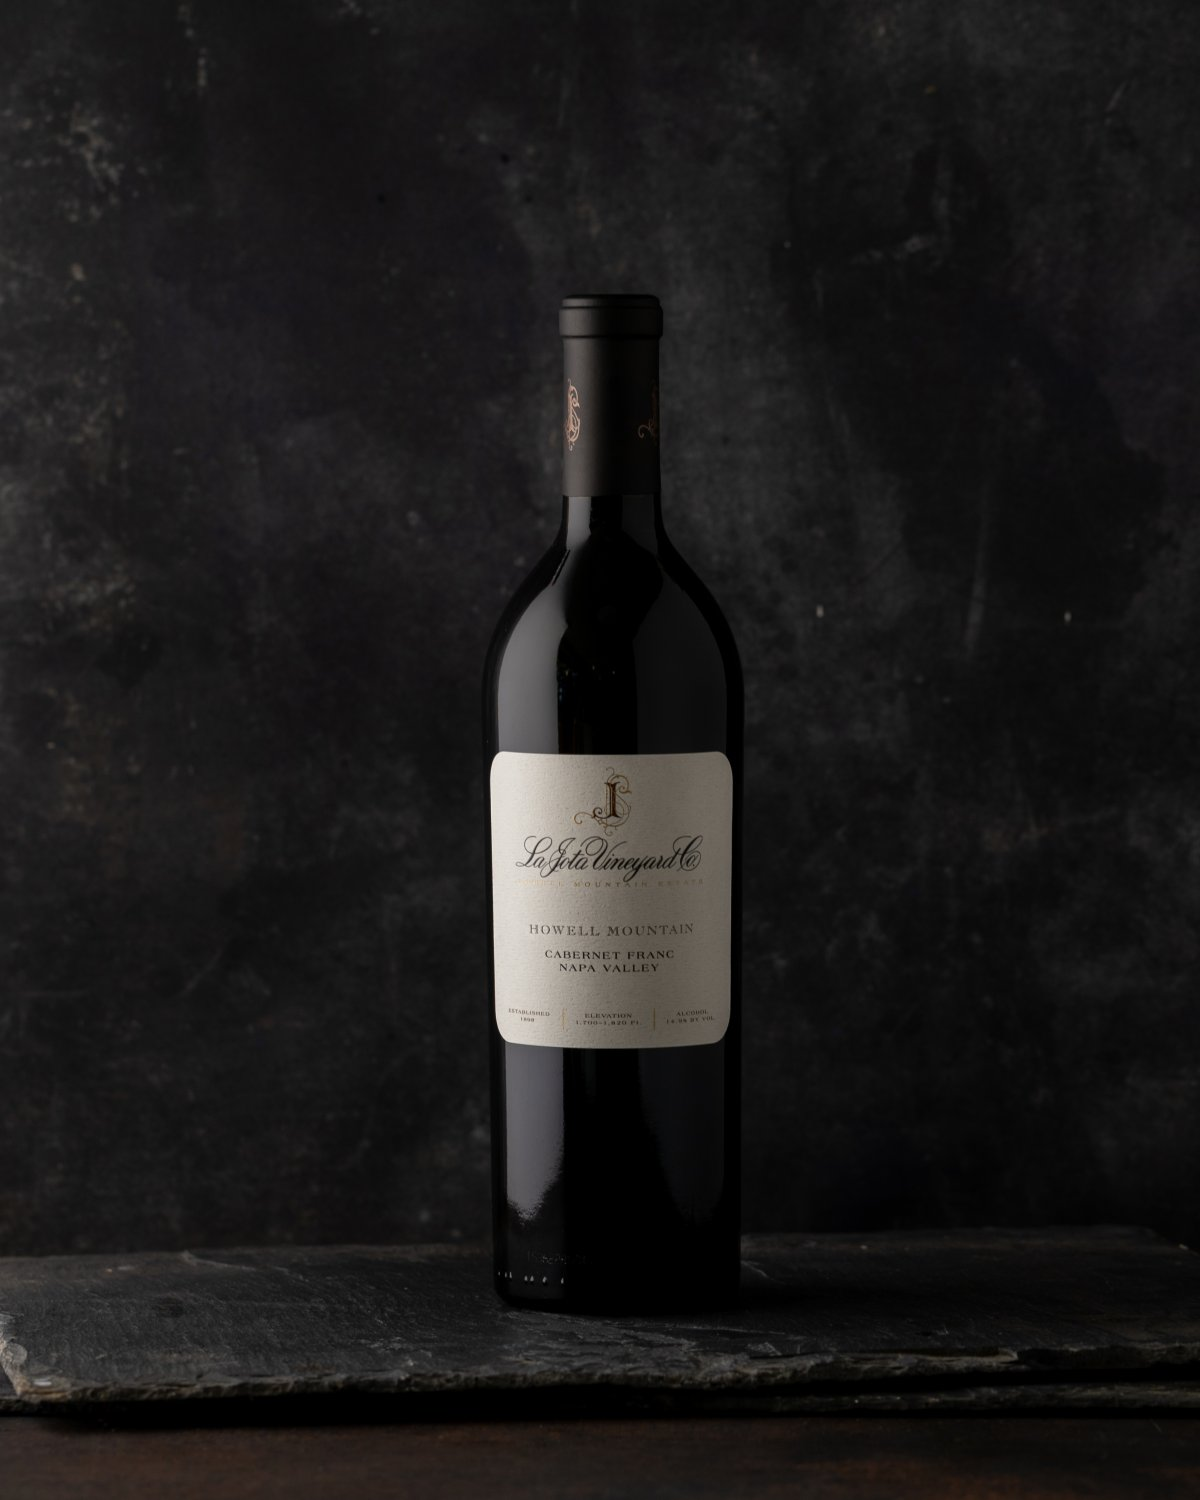 2014 La Jota Vineryard Co Howell Mountain Cabernet Franc